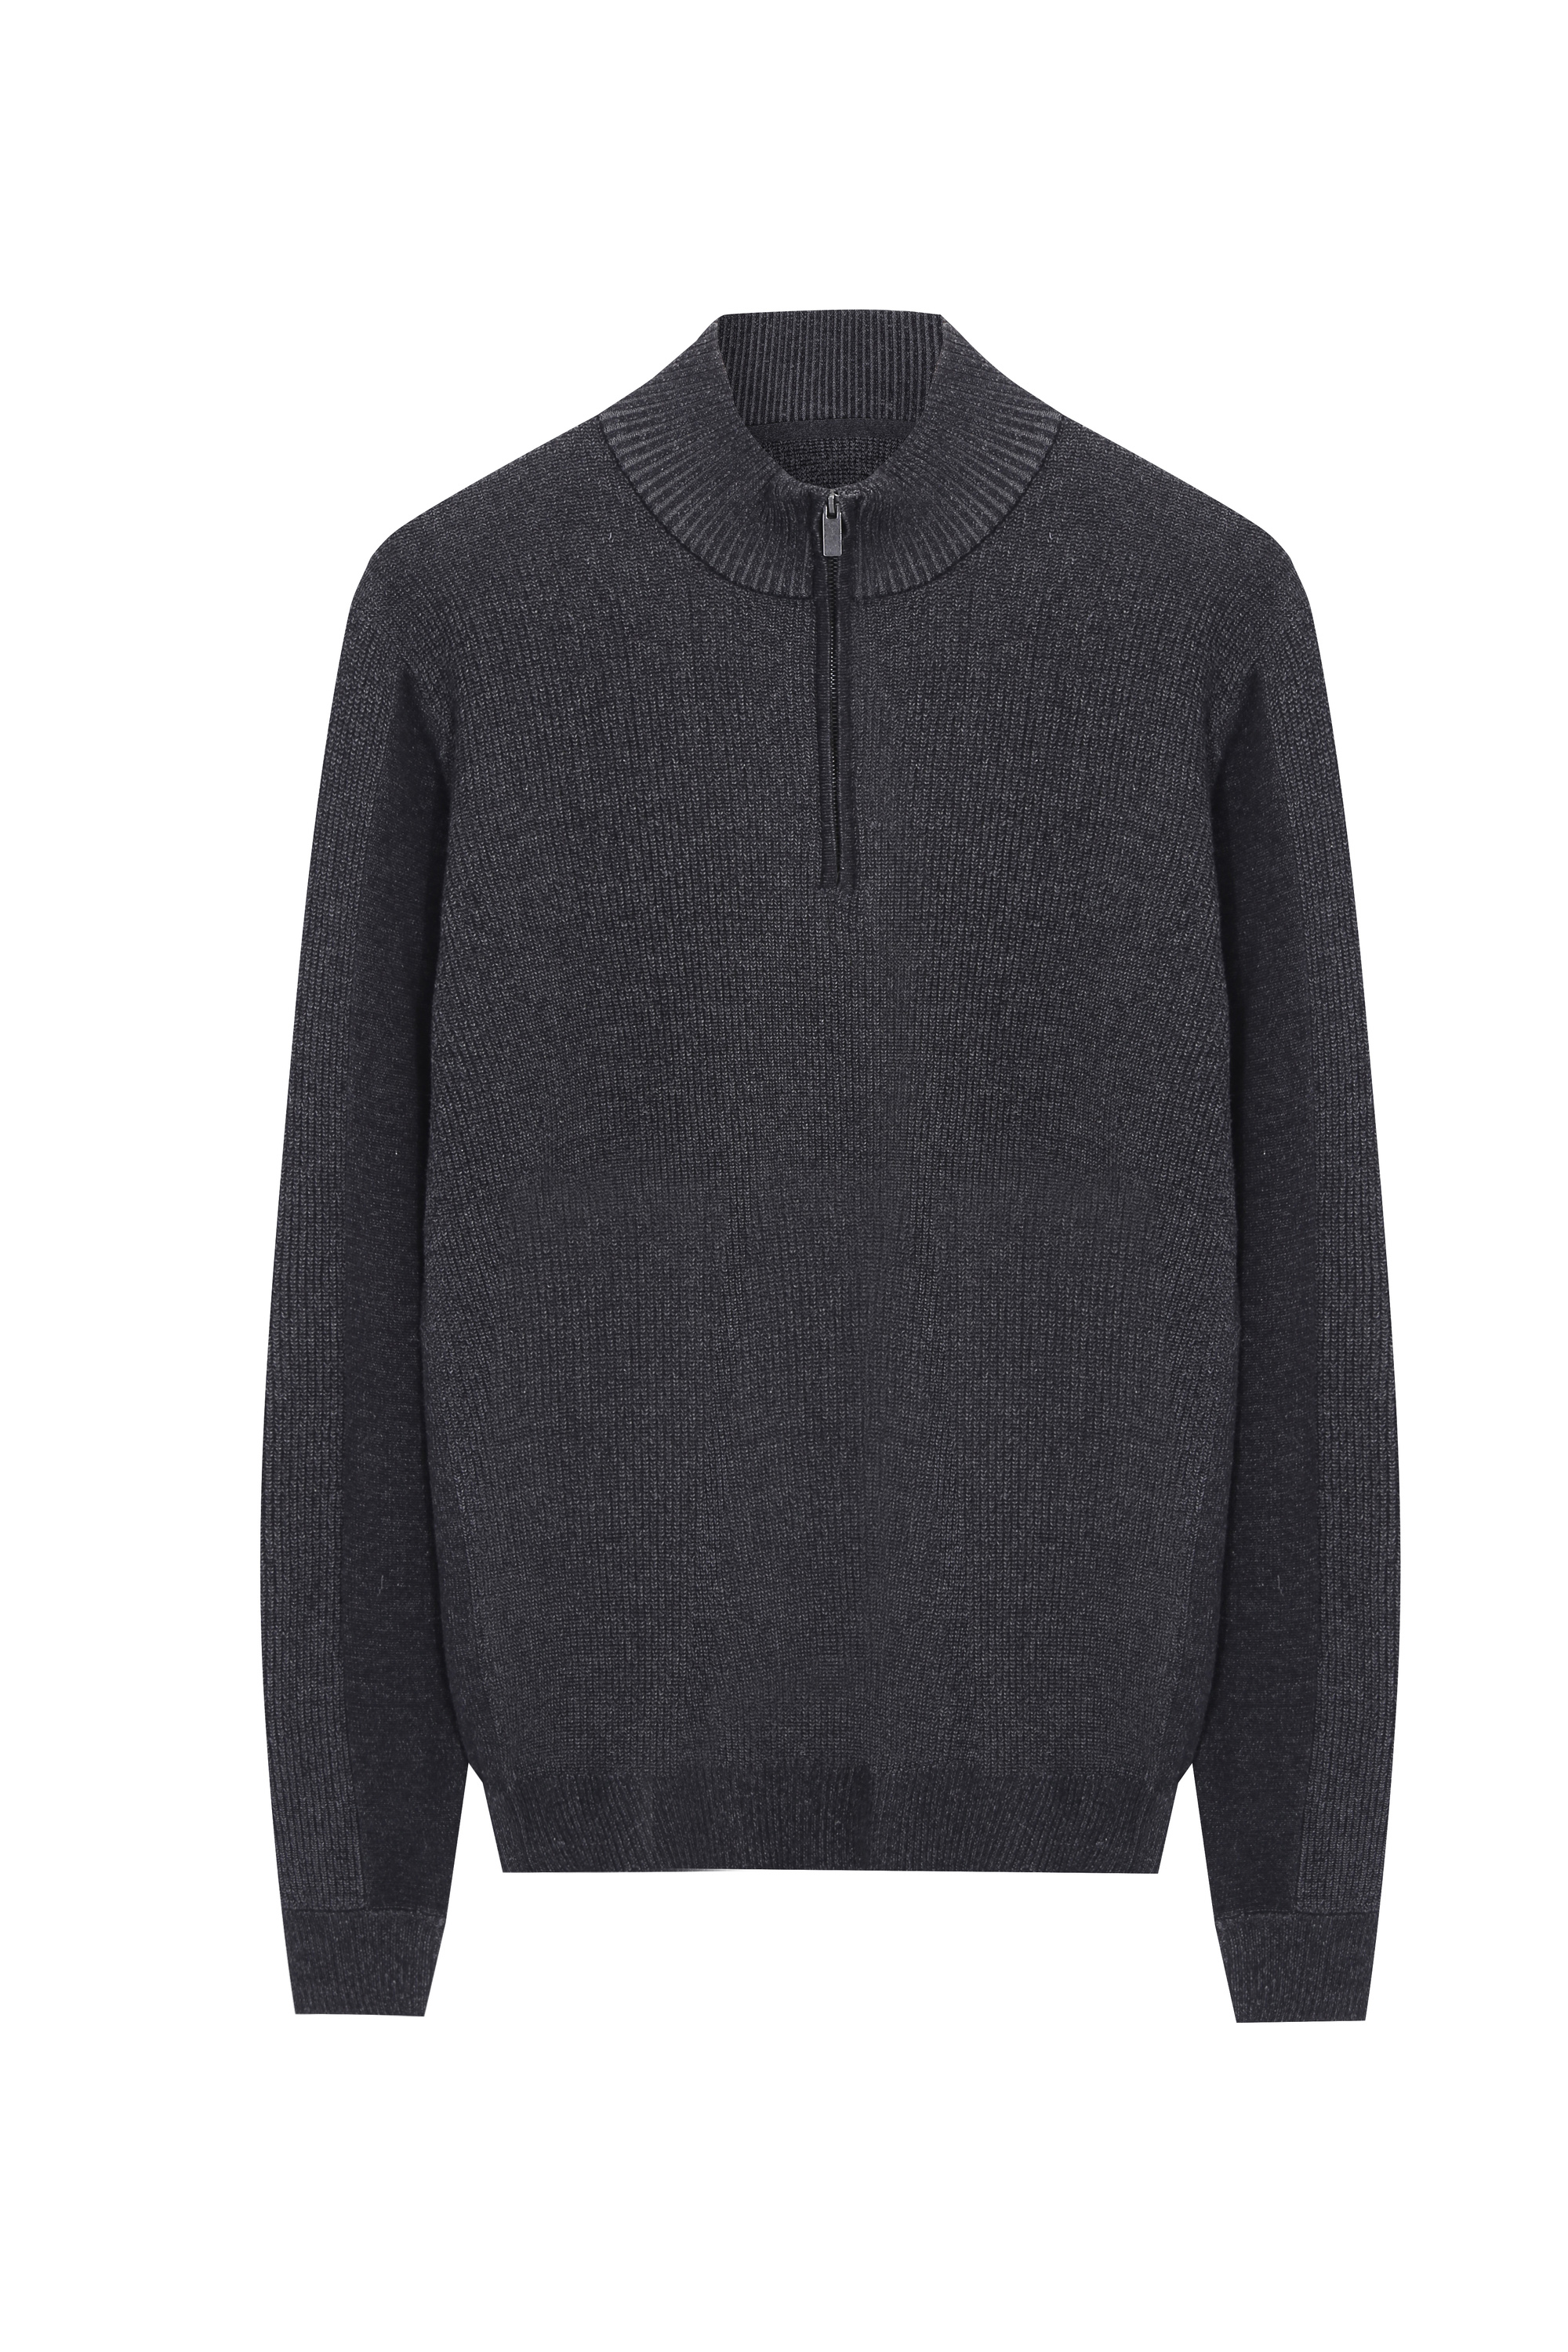 Men's half zip Soft Cotton knitted Sweater